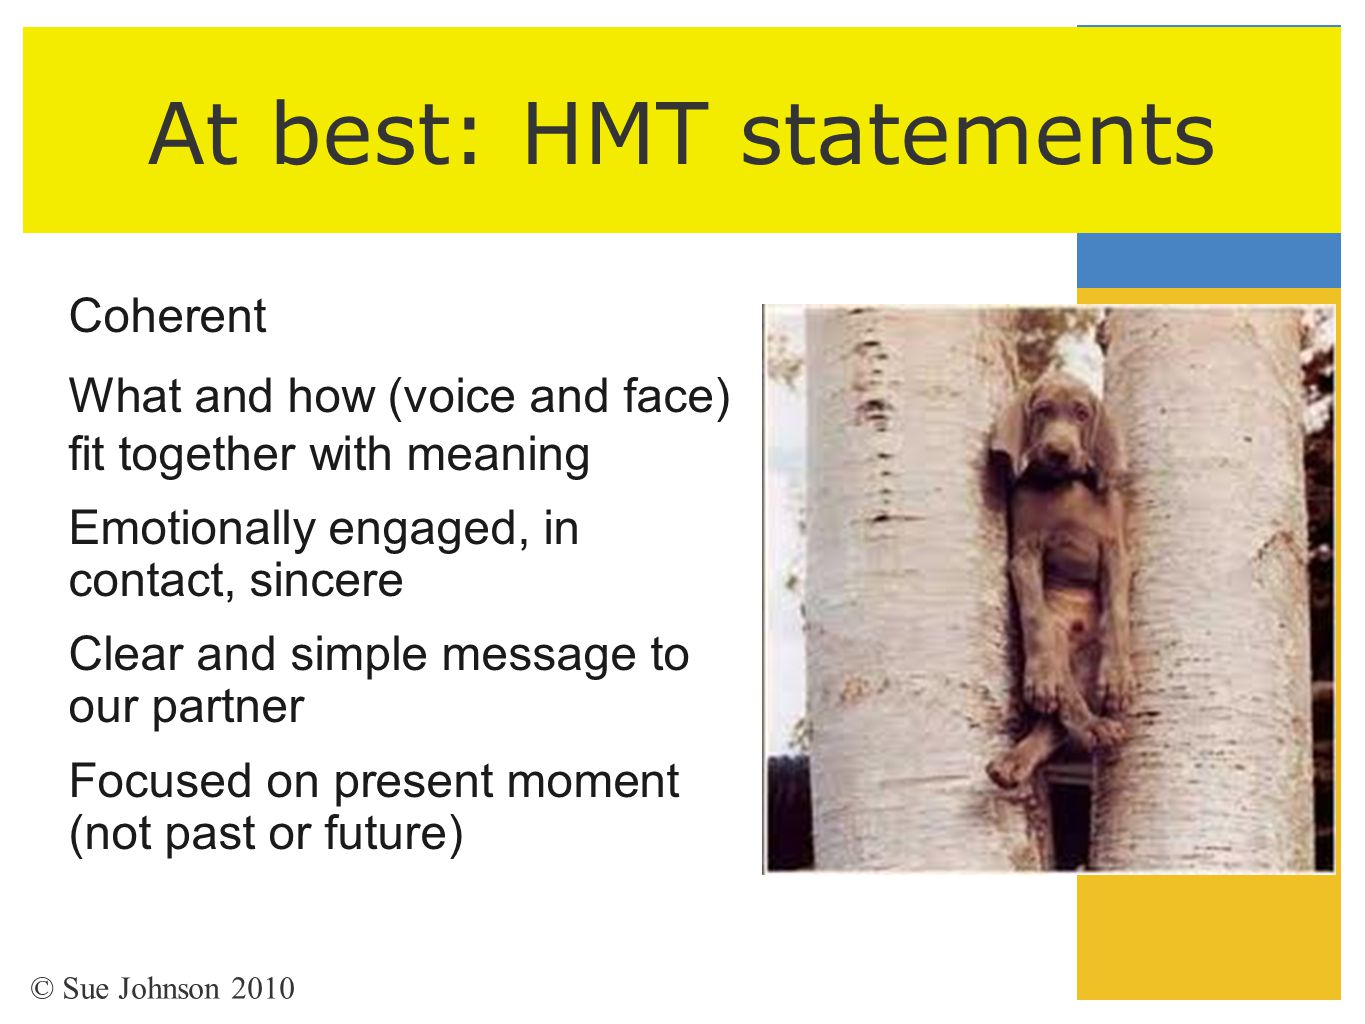 At best: HMT statements